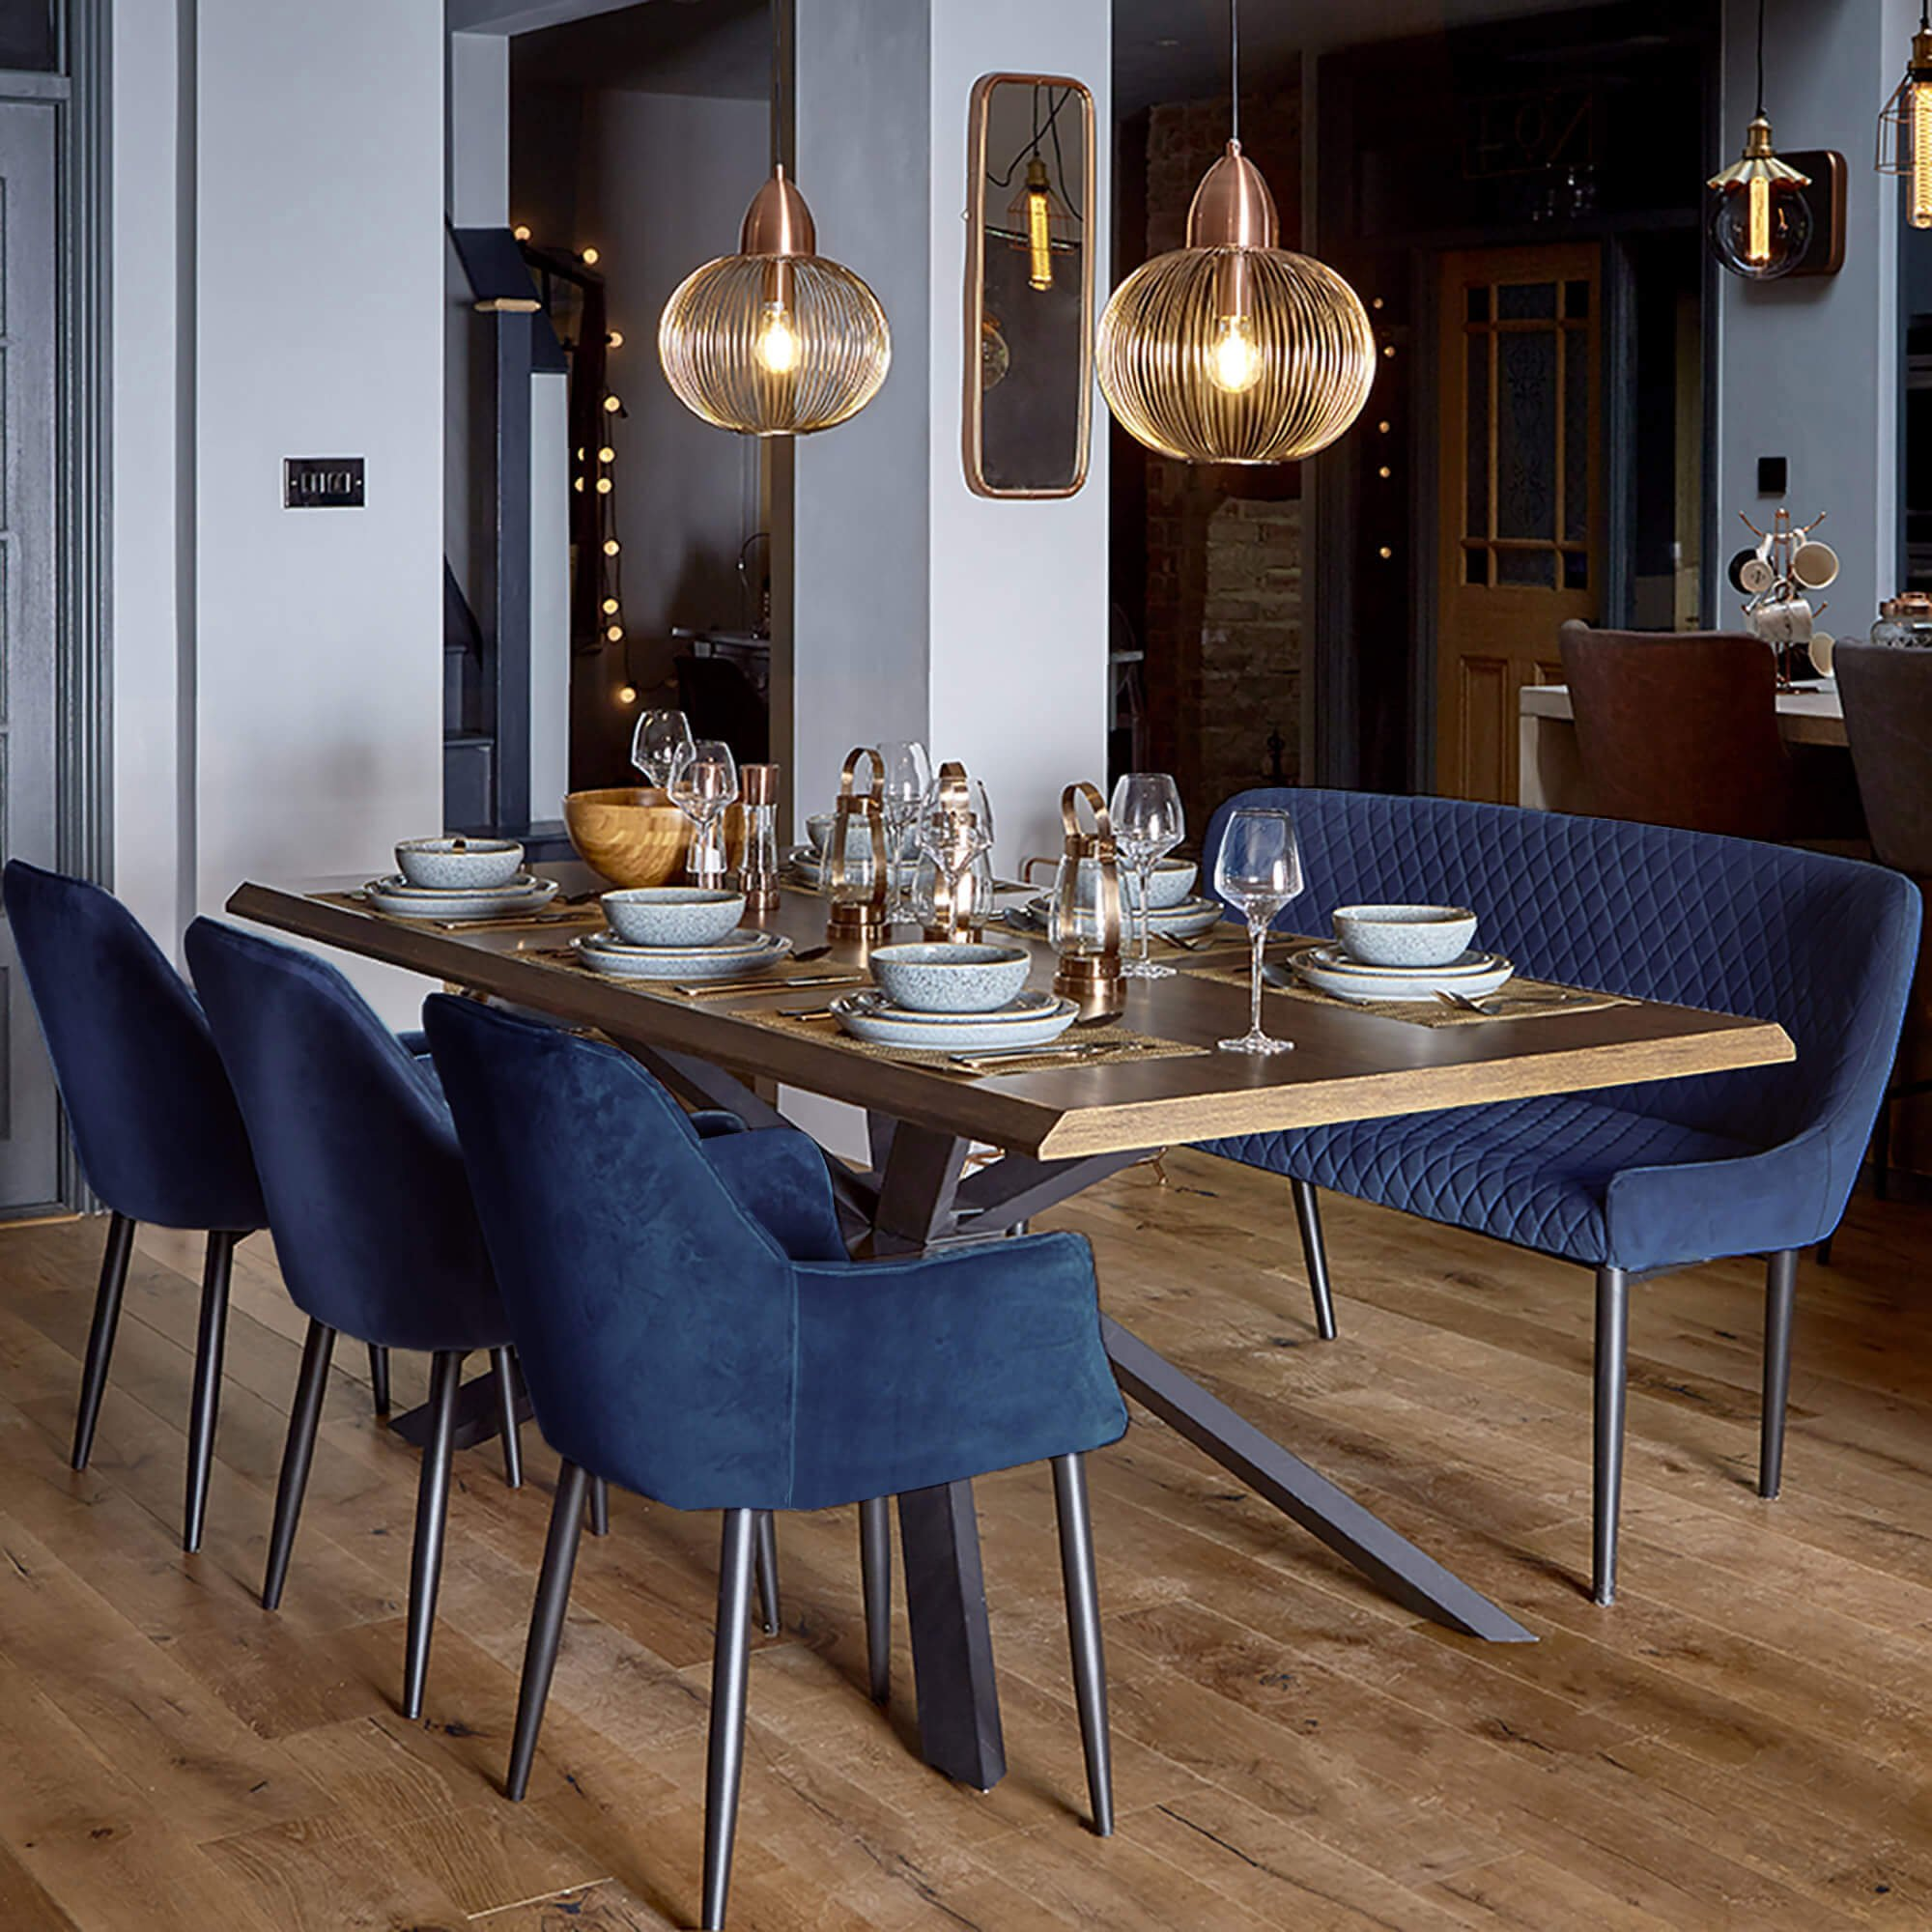 Housing Units On Twitter A Must Have For The Host With The Most The Bronx 200cm Dining Table Bench 3 Blue Chairs Is A Stunning Addition To Any Dining Space Sale Now